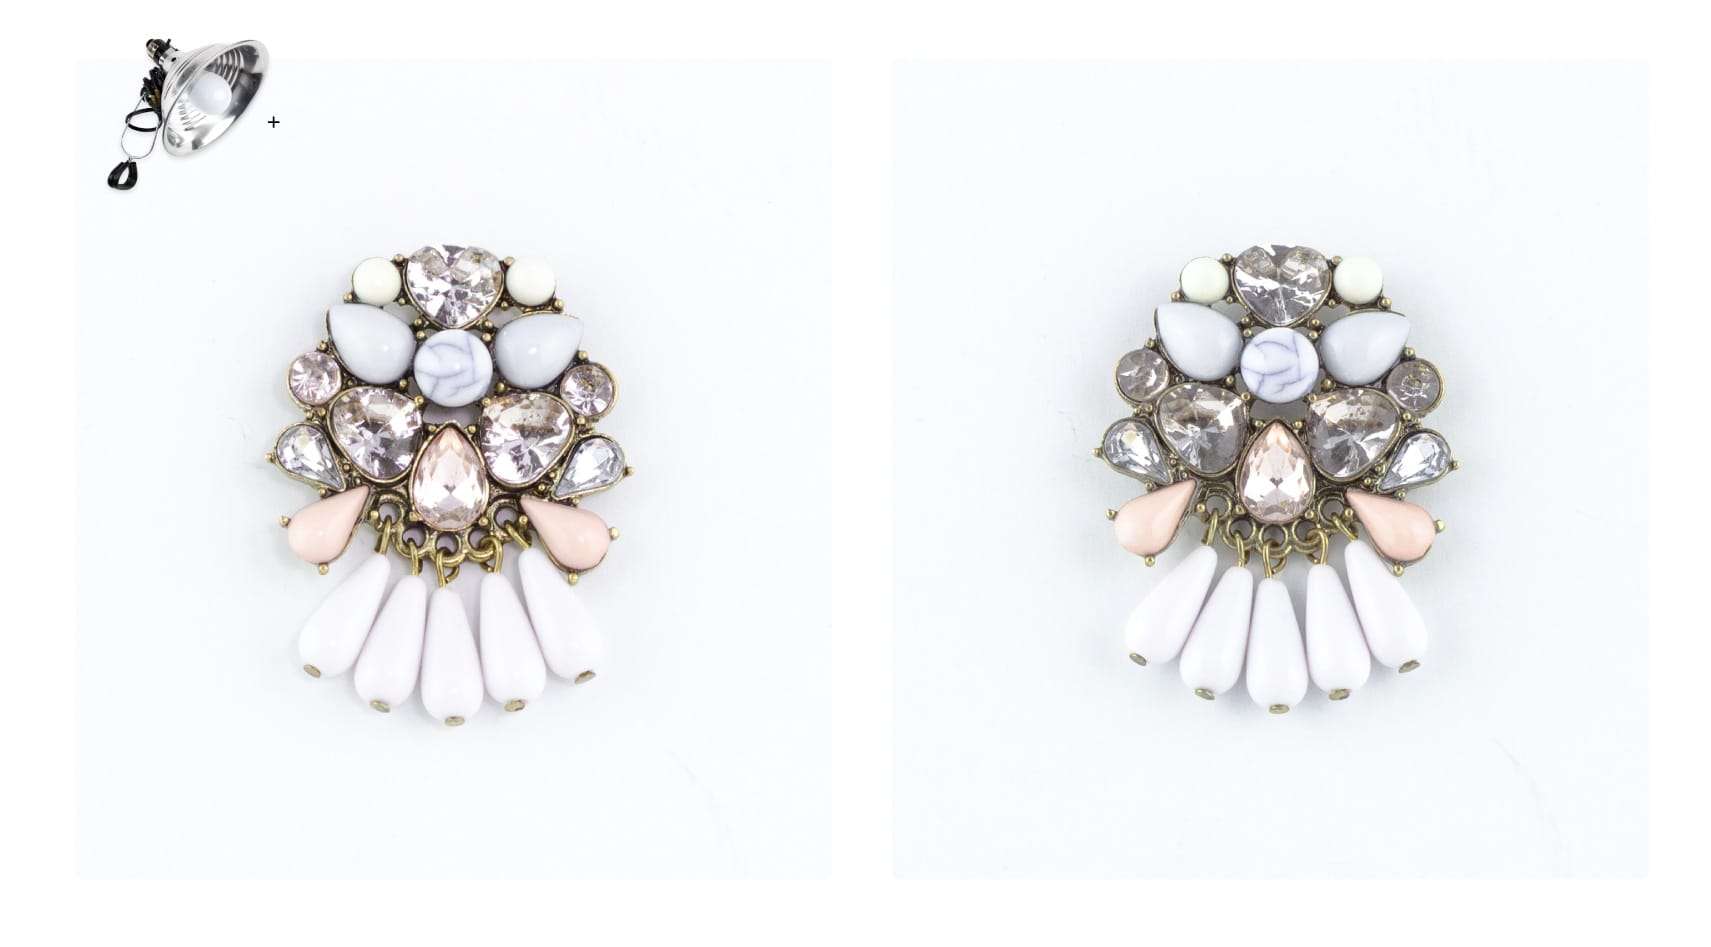 lighting jewels on earrings with the use of a sparkle light